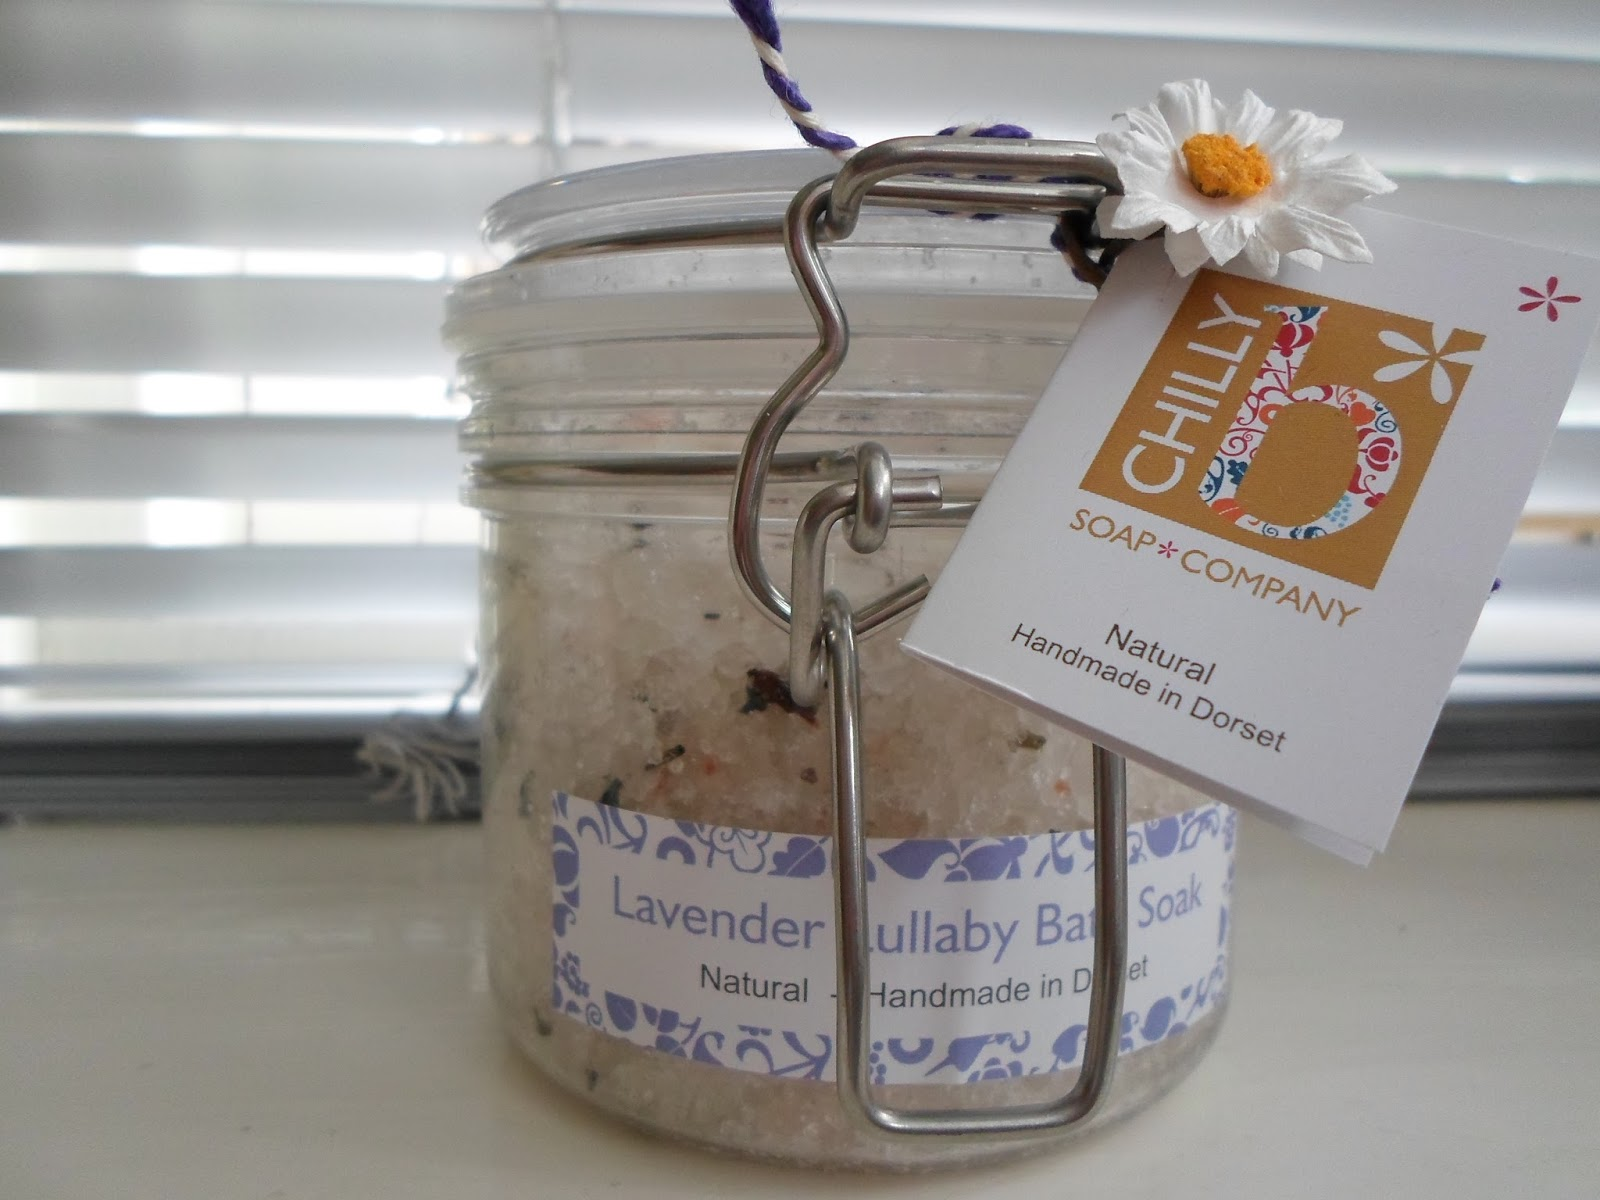 Chilly B Lavender Lullaby Luxury Bath Soak